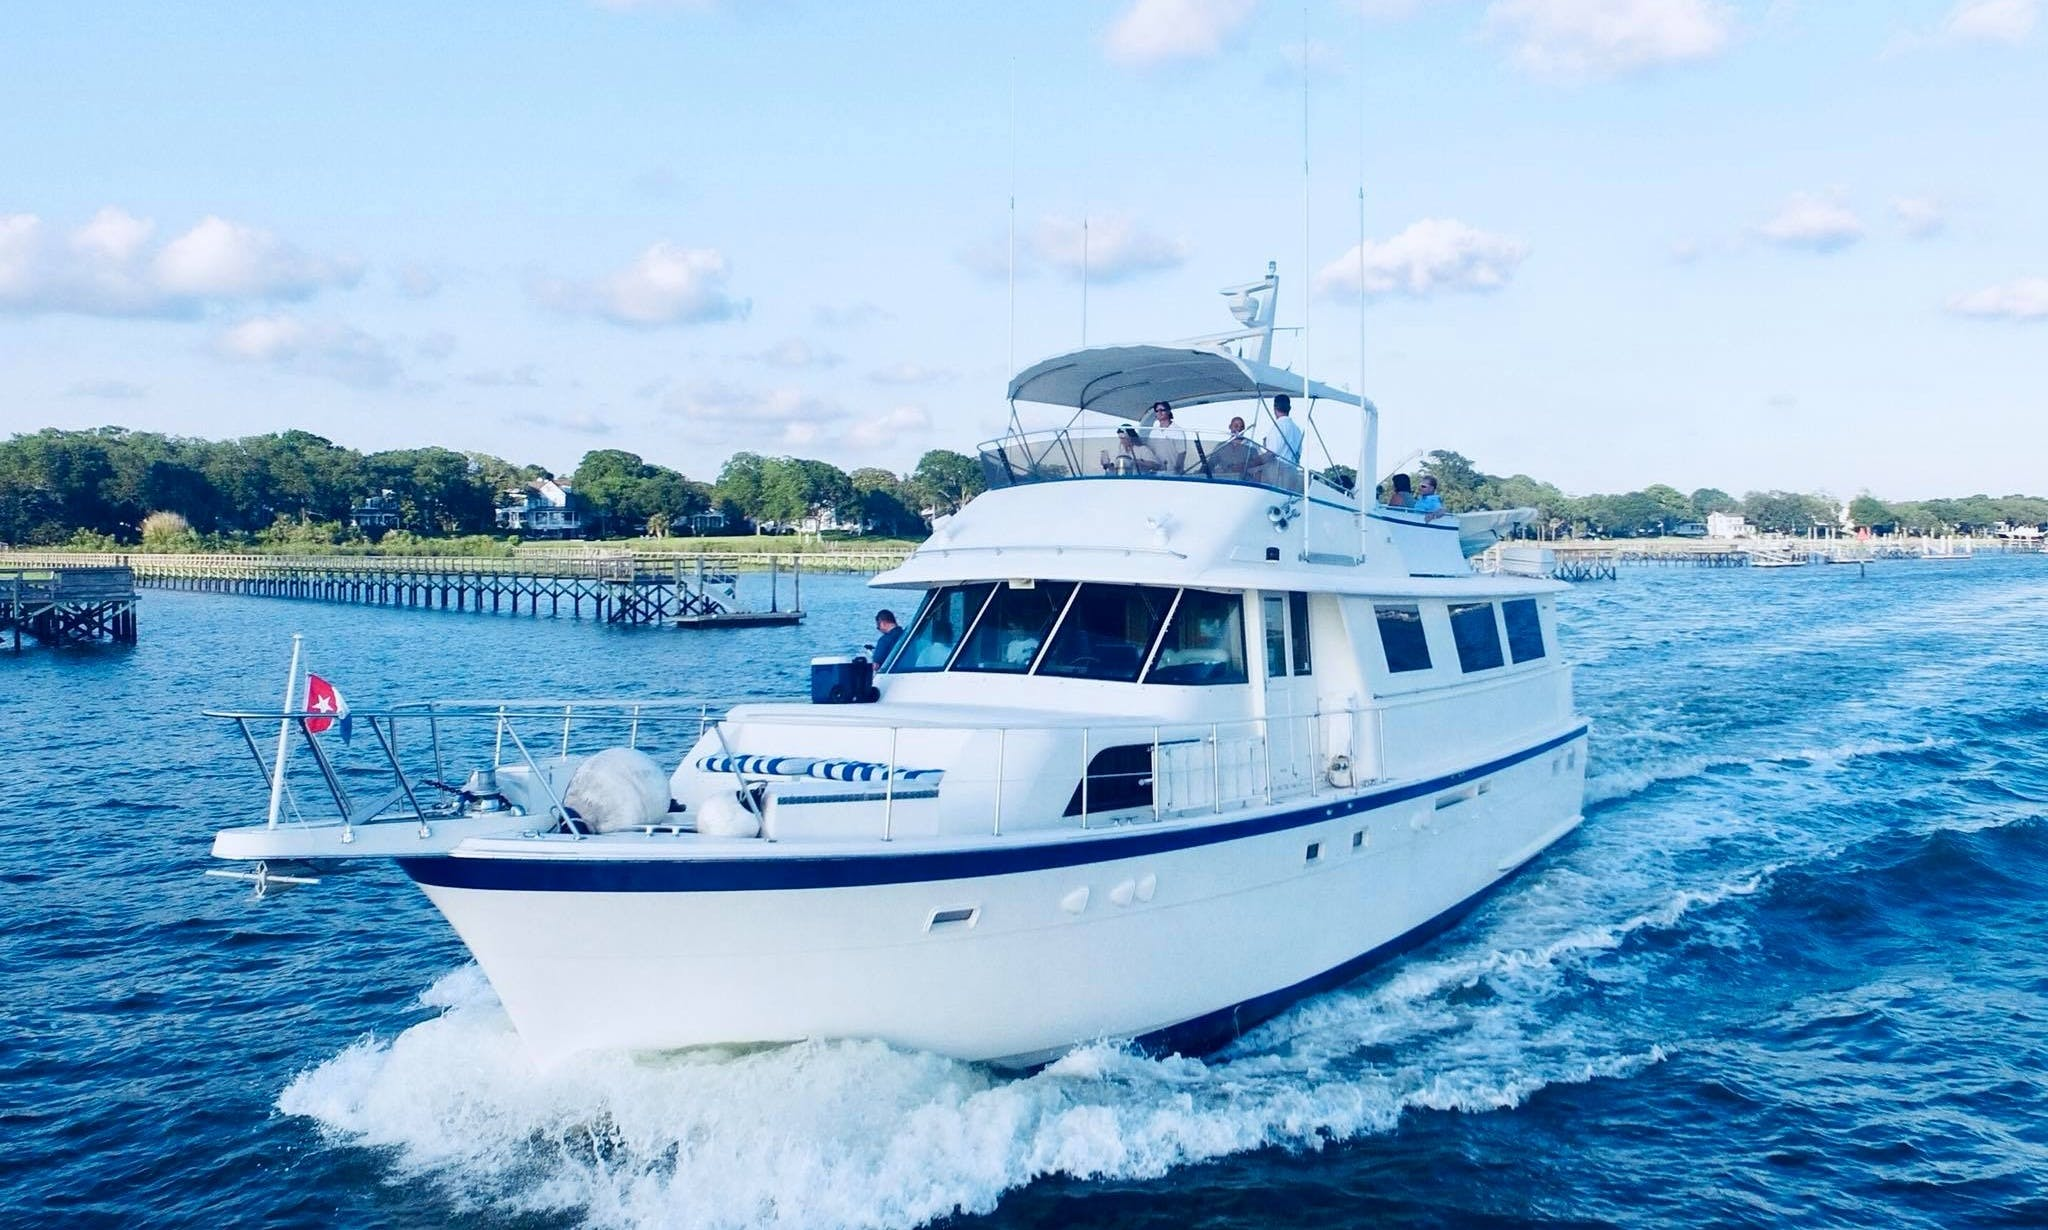 61' Hatteras Motor yacht for overnight rental